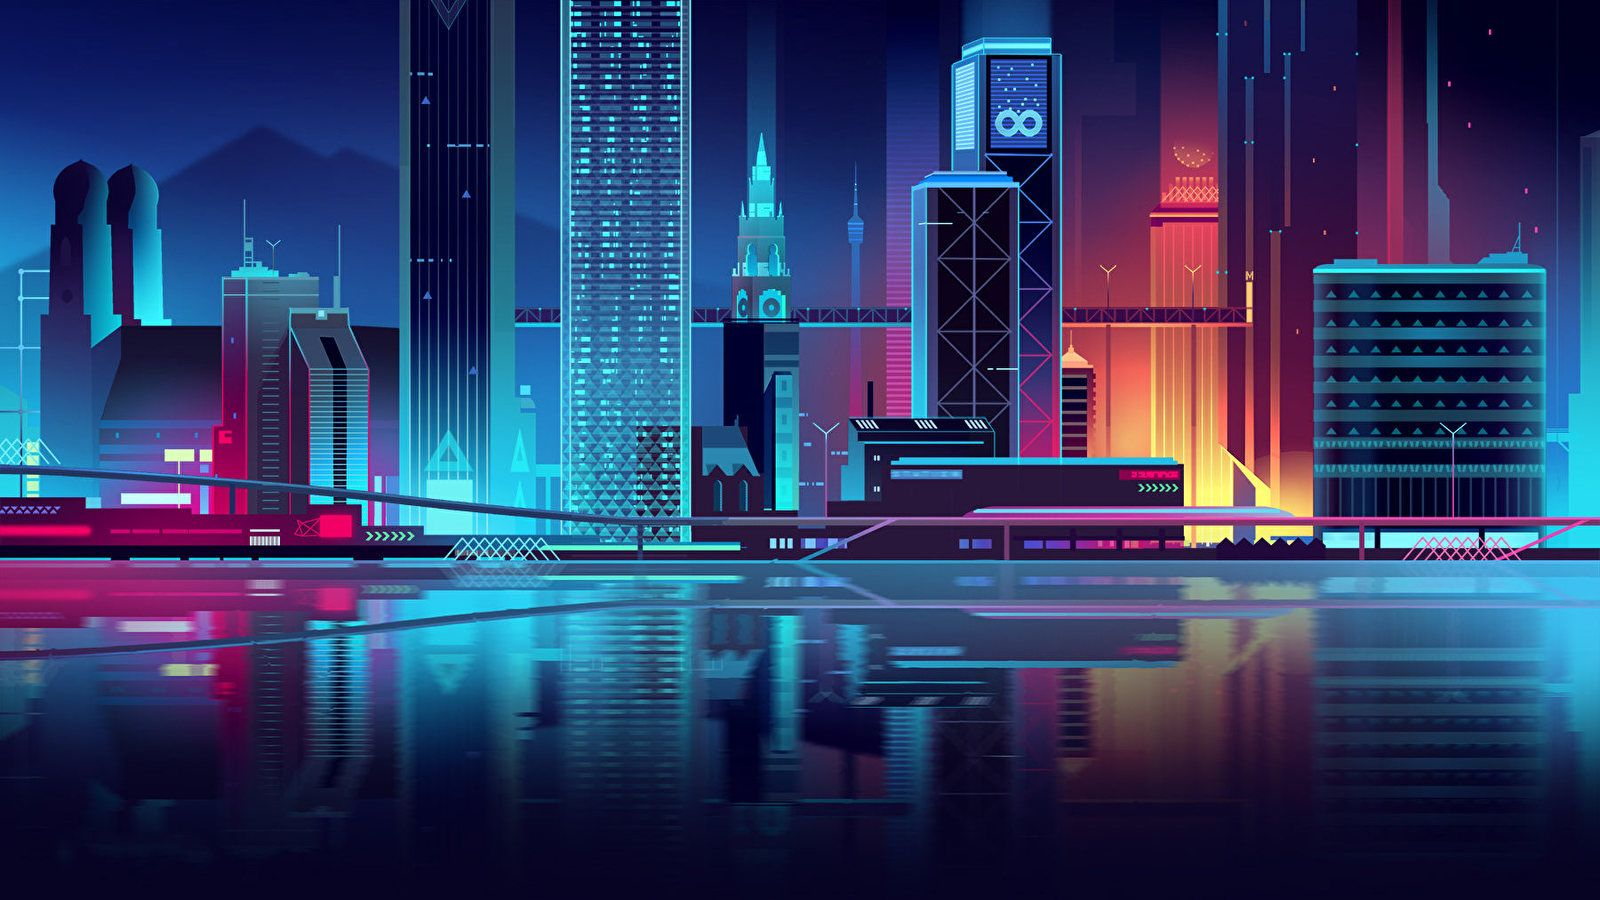 City Wallpapers On Wallpaperdog